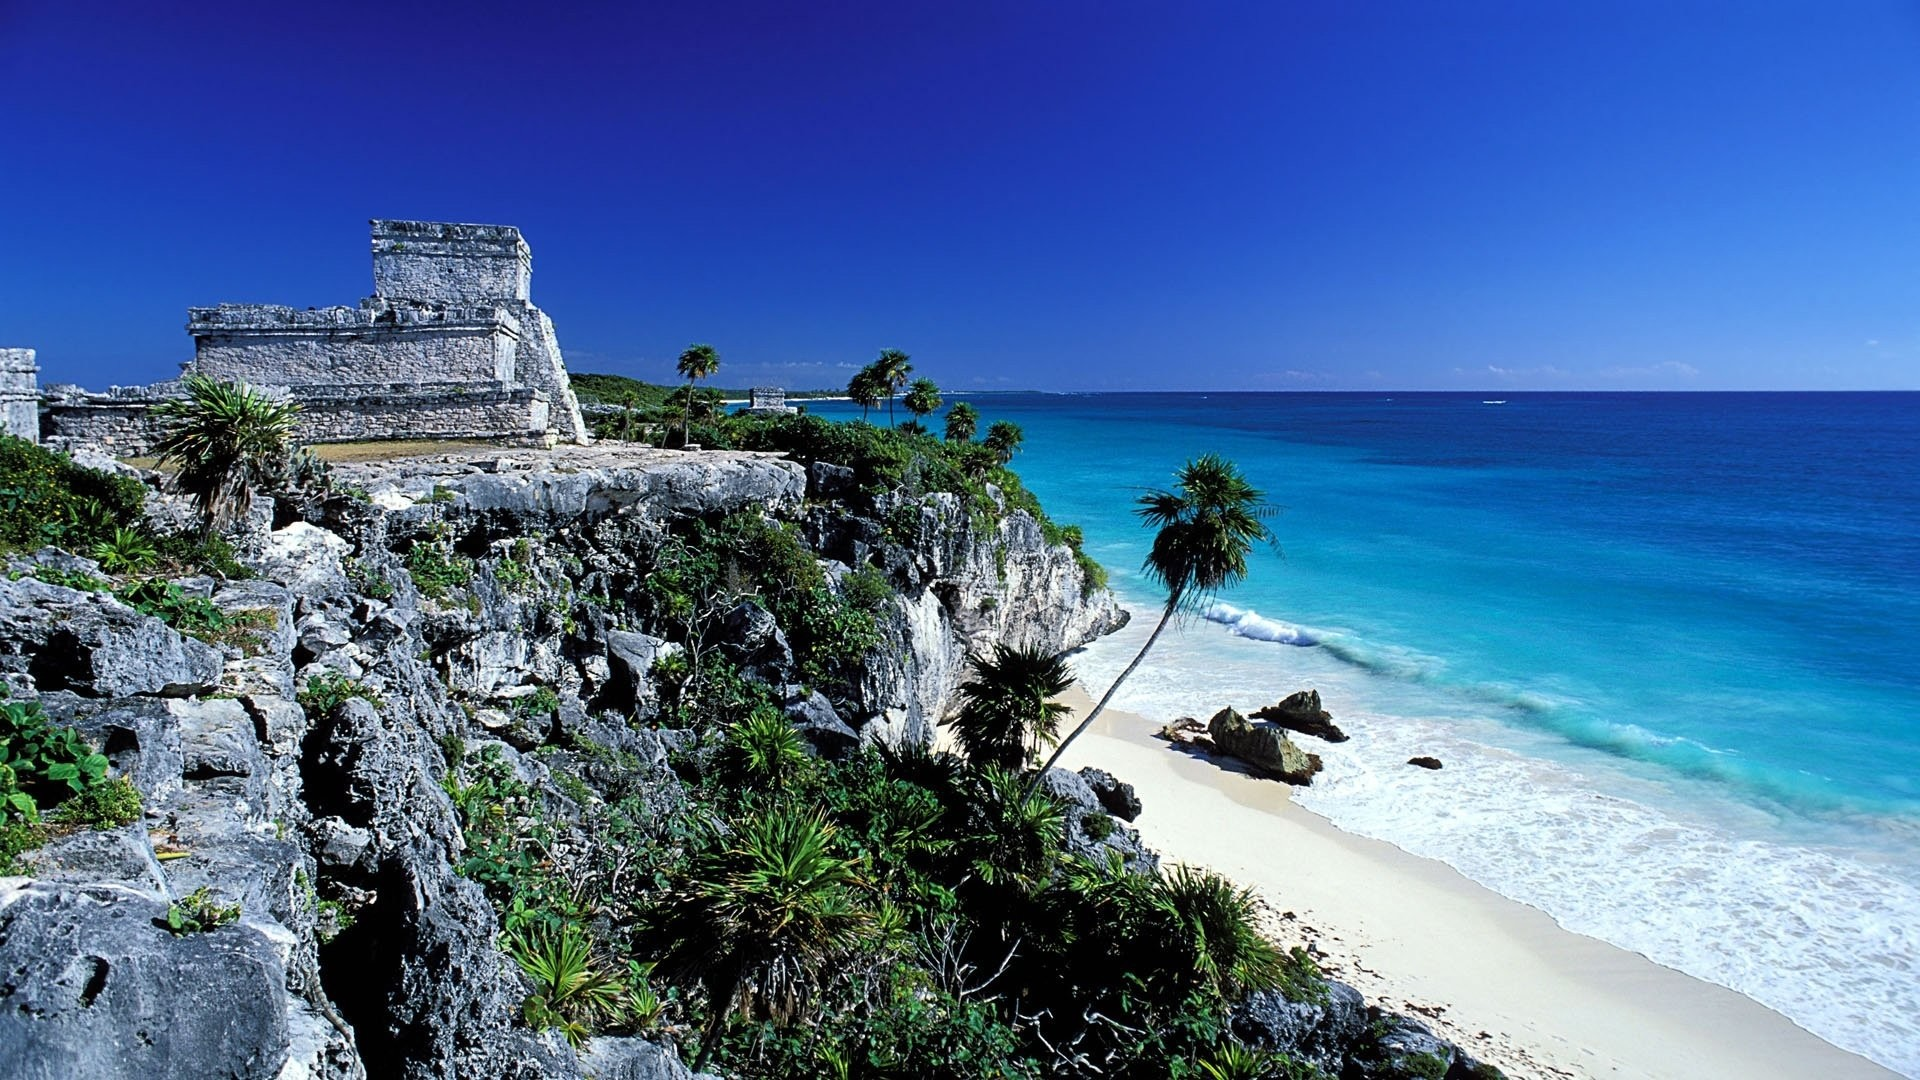 50 Mexico Beach Wallpapers on WallpaperPlay 1920x1080